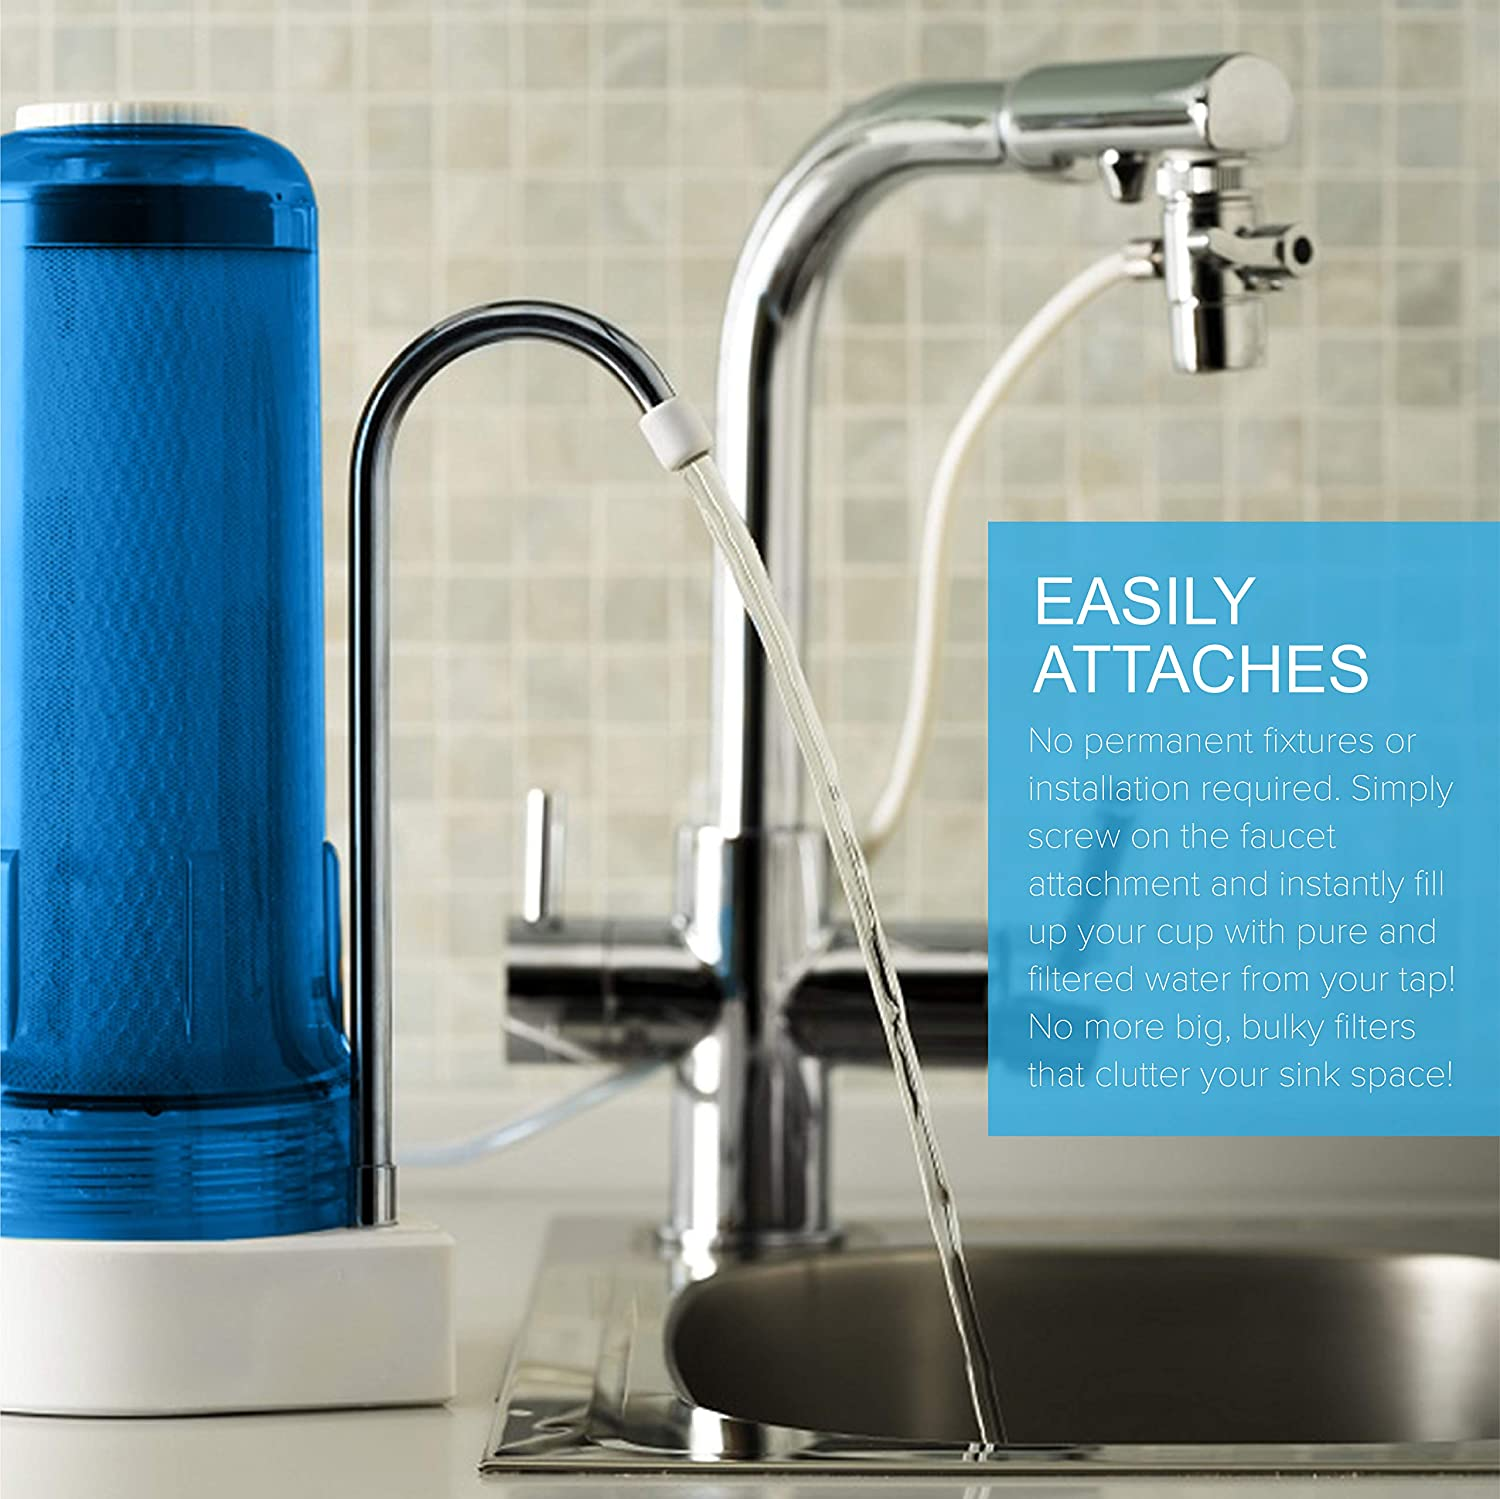 Ecosoft FMV1BOBWEXP Countertop Water Filter in real life